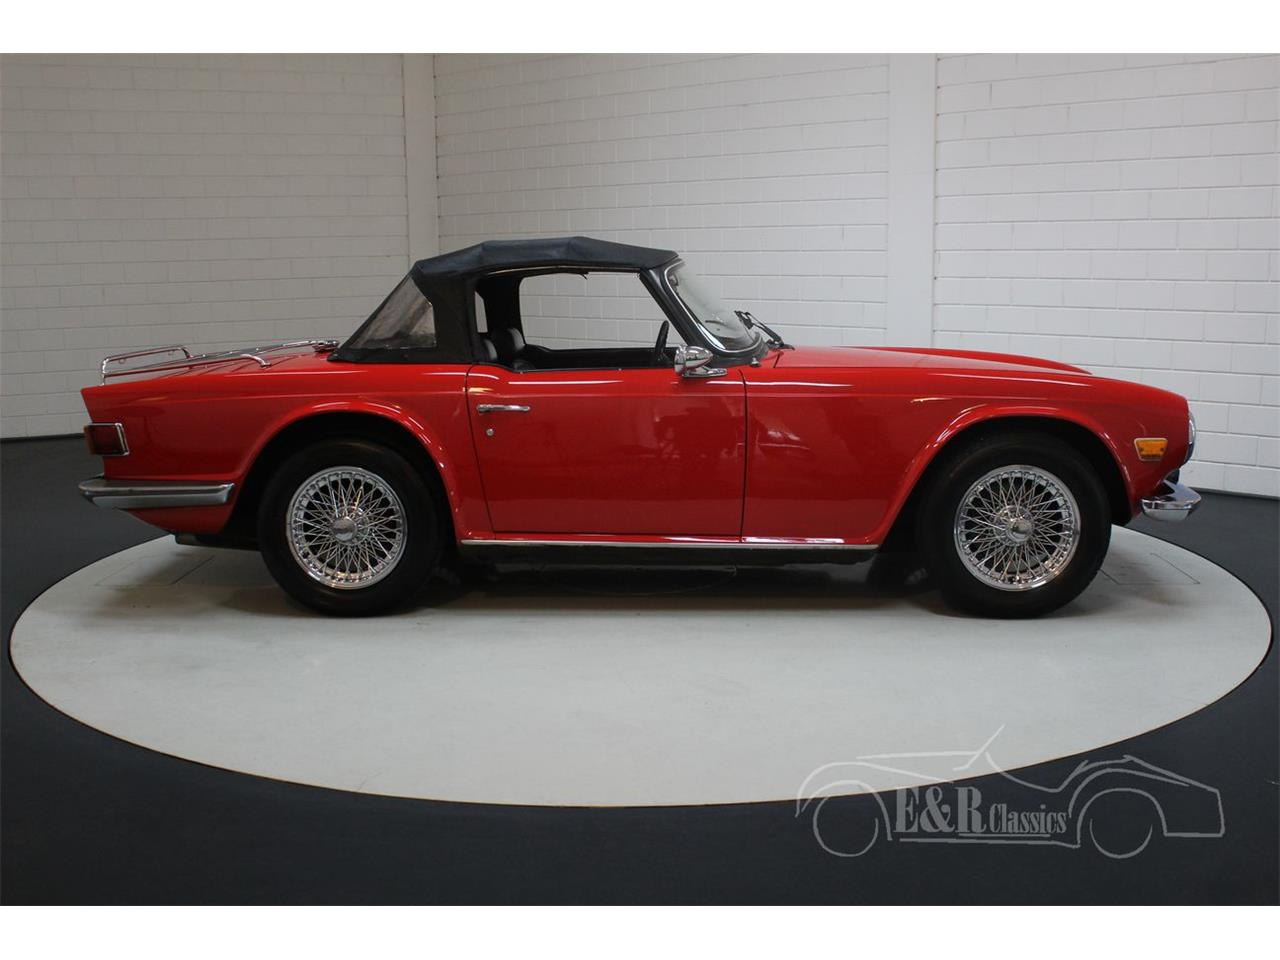 Large Picture of Classic 1973 TR6 located in Noord Brabant - $25,800.00 Offered by E & R Classics - PWMQ